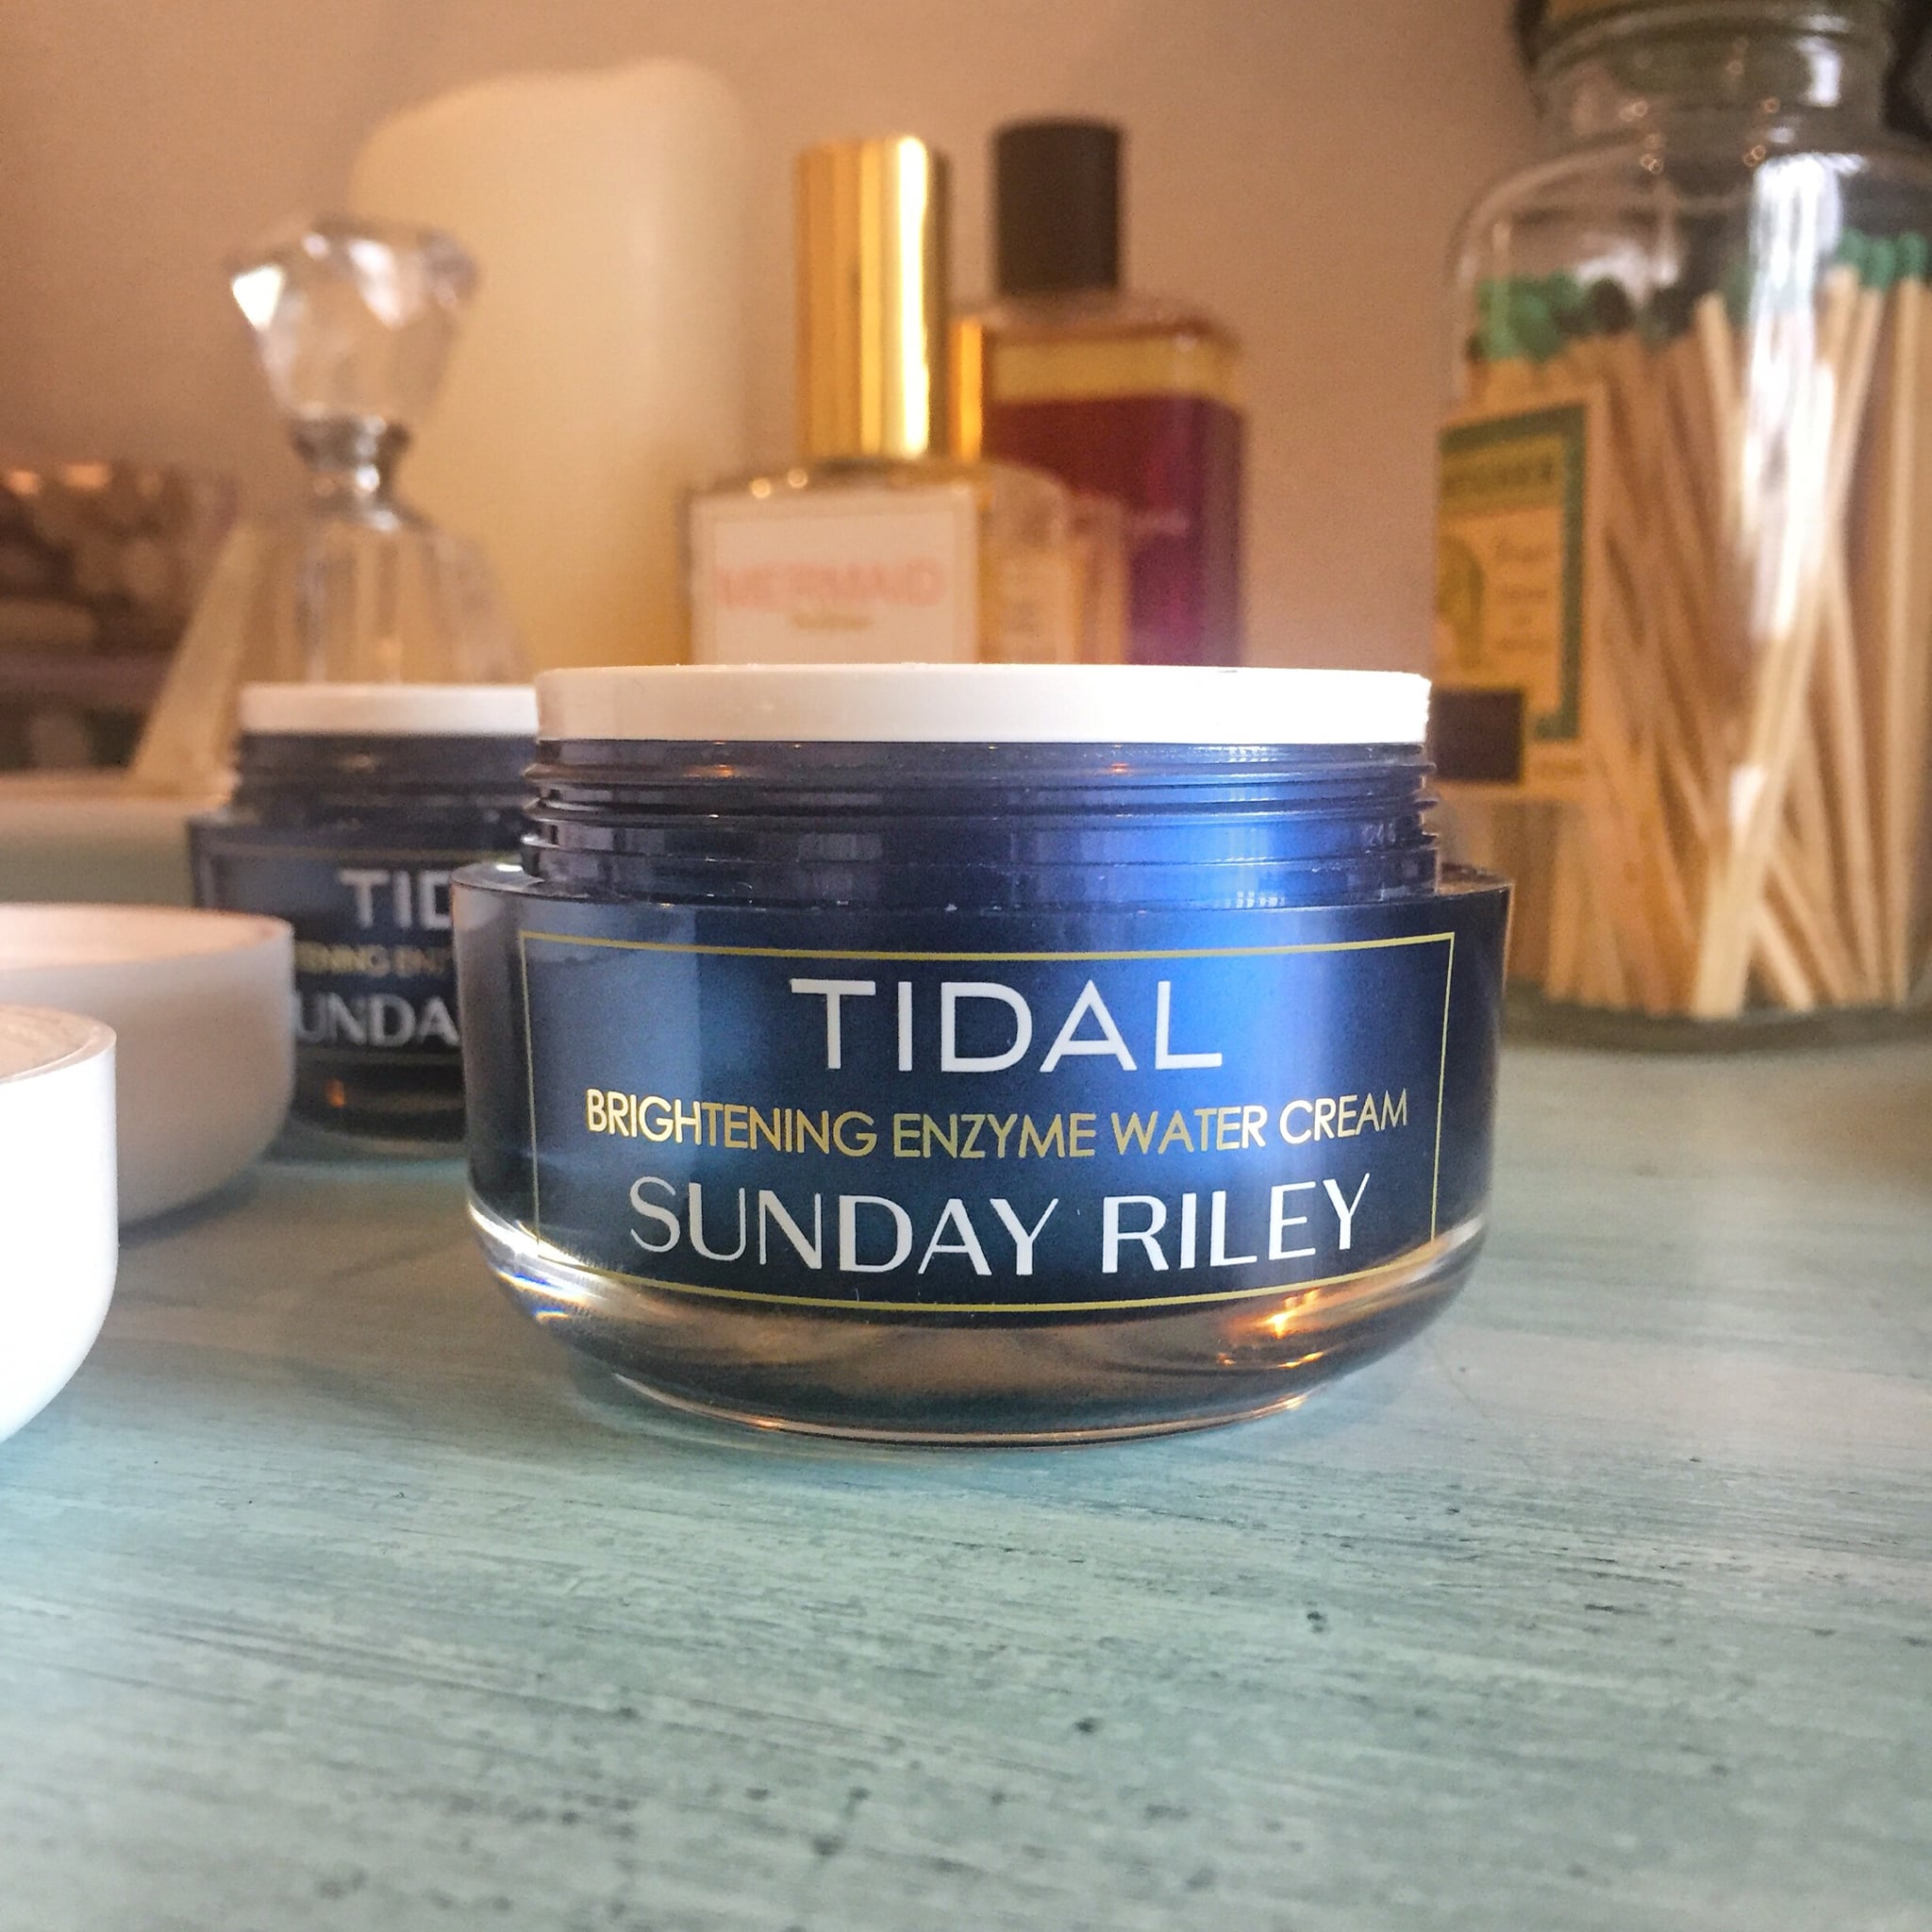 Why I Believe This Is the Best Face Moisturizer in the World